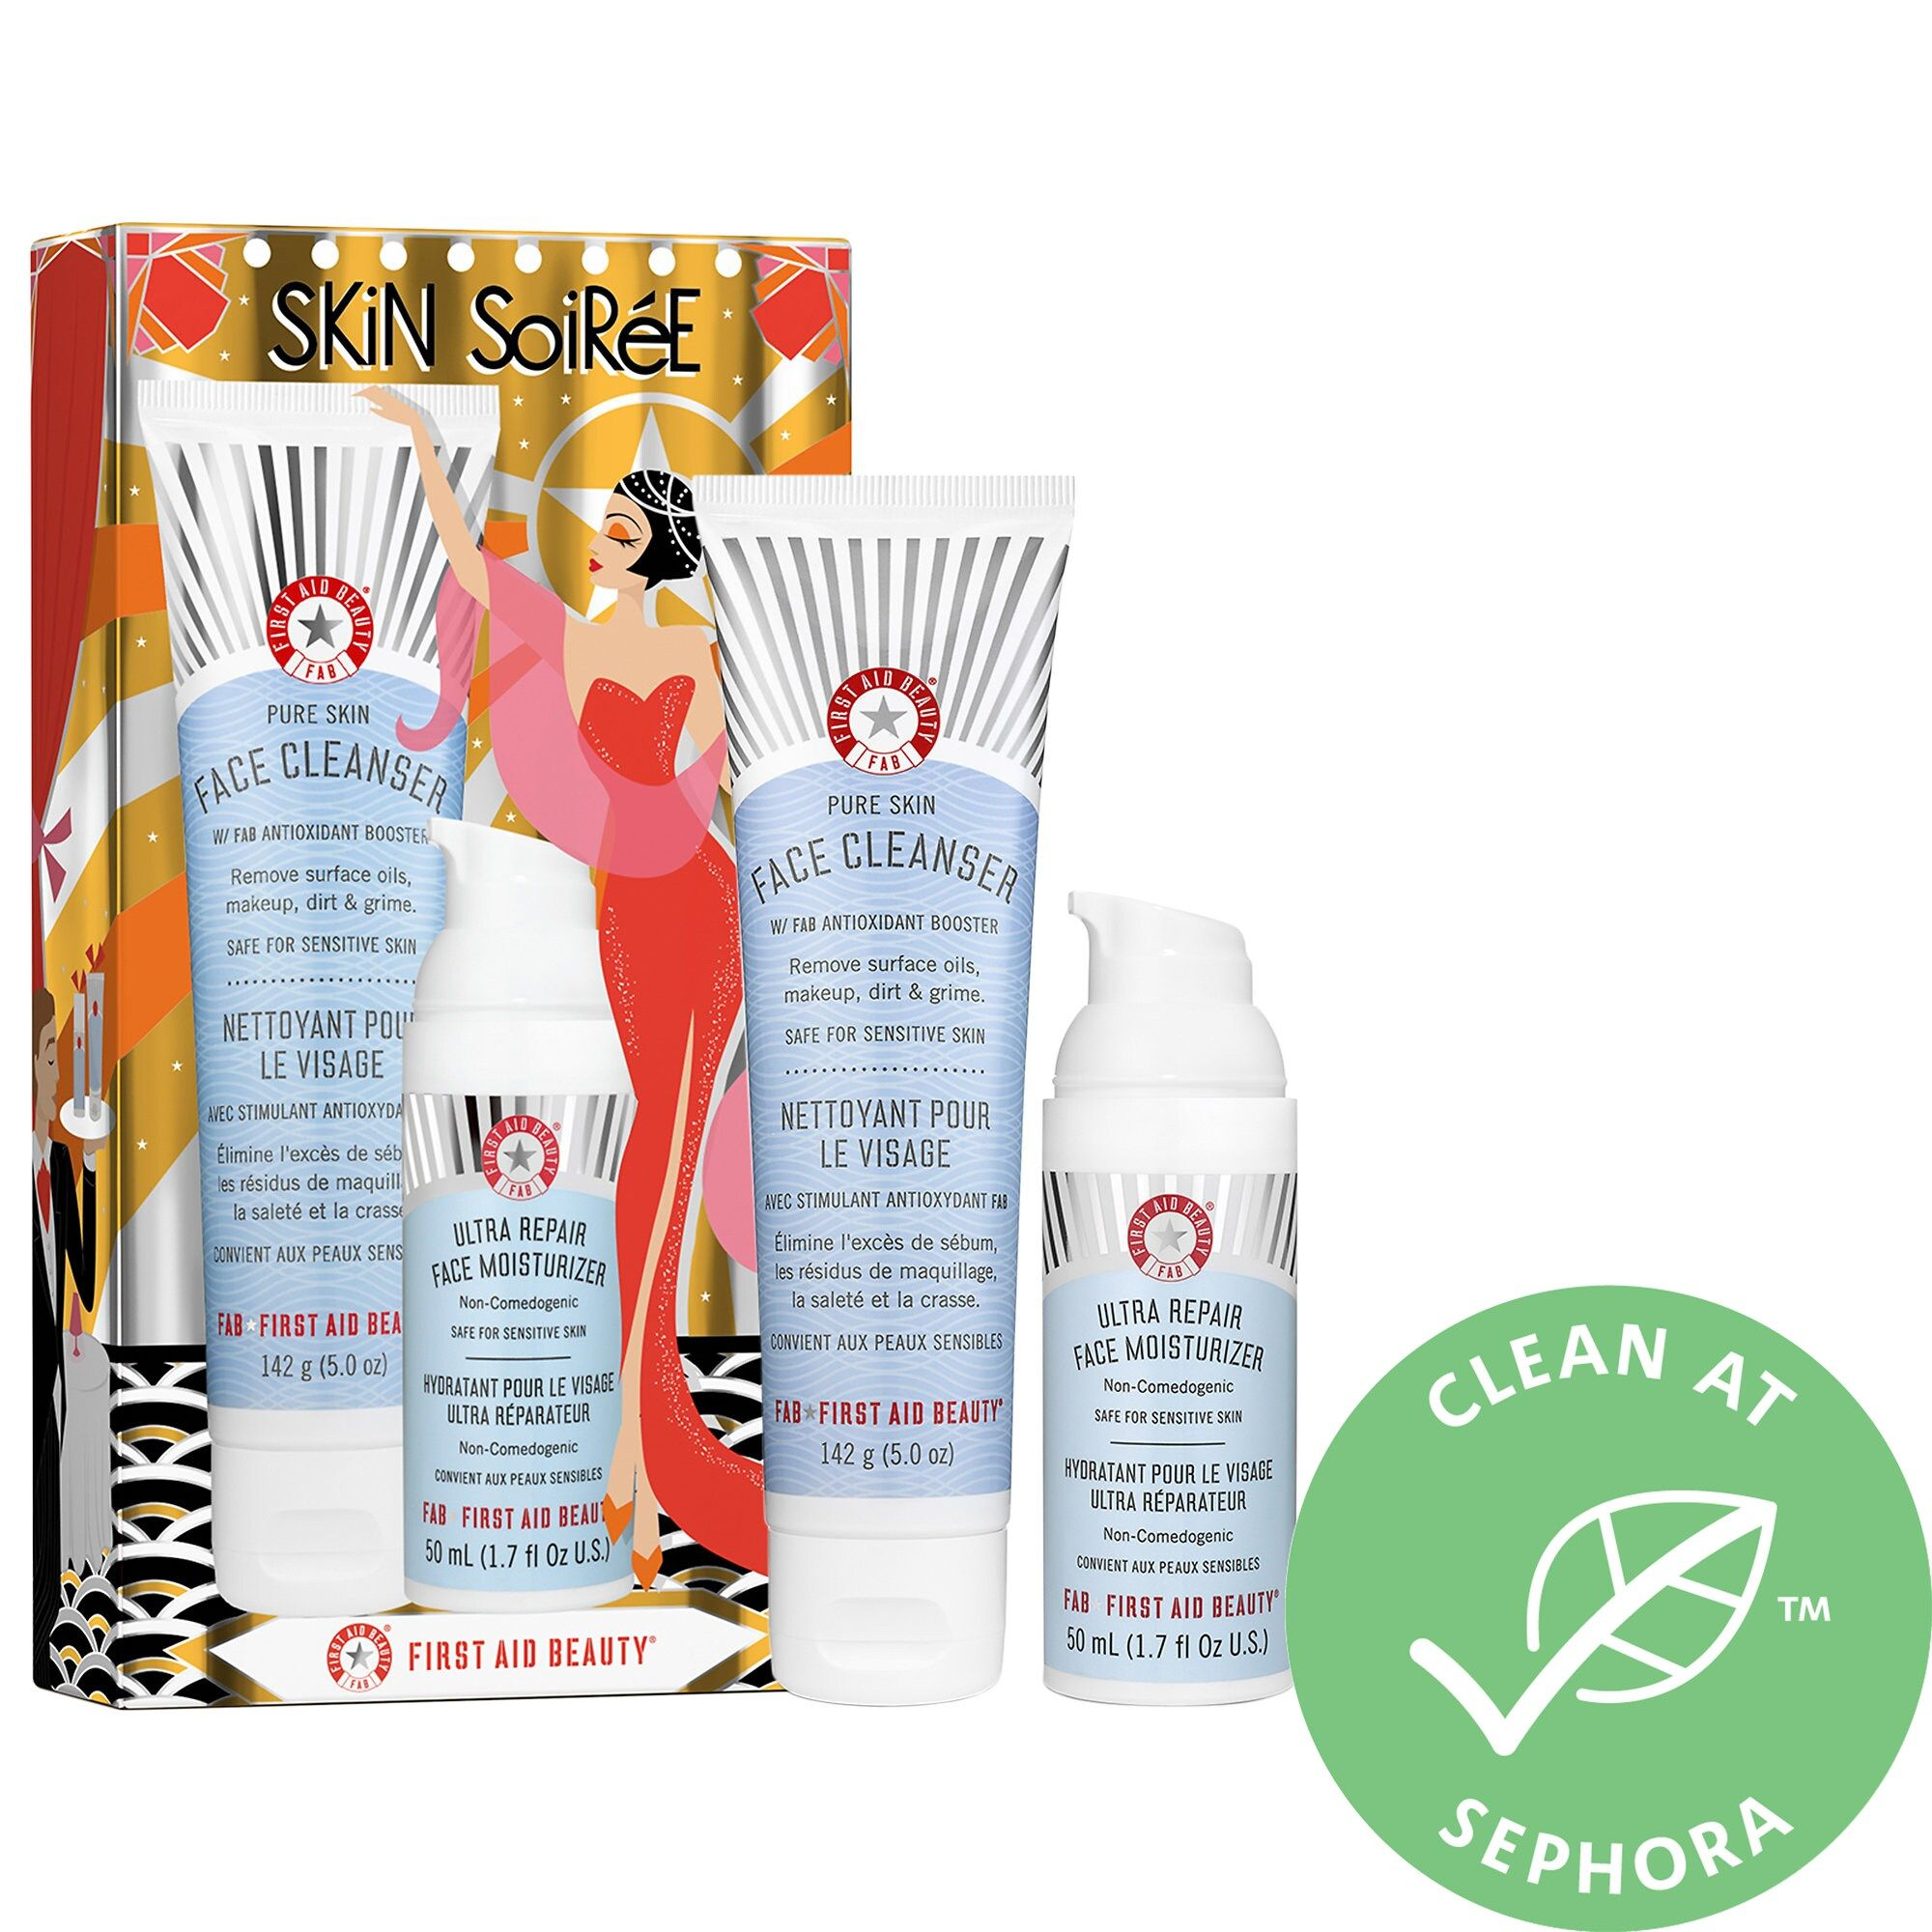 First Aid Beauty Skin Soiree Oily Skin Care Fragrance Free Products Face Cleanser